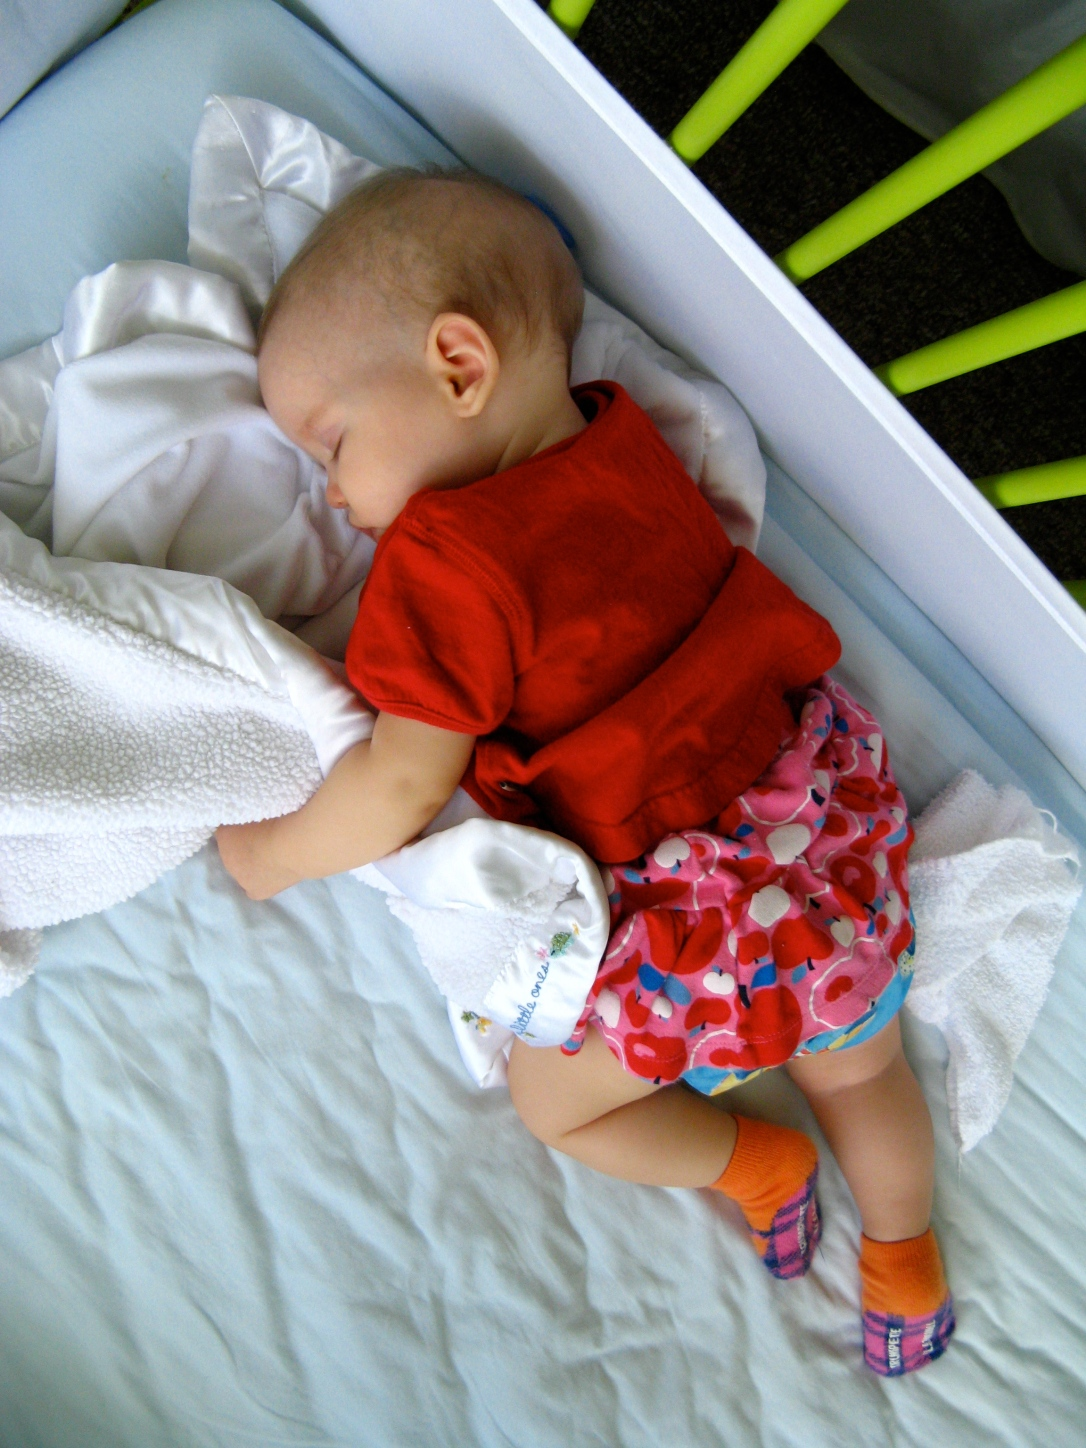 Six month old baby Aveline sleeping peacefully in crib, holding baby blanket, wearing Trumpette socks